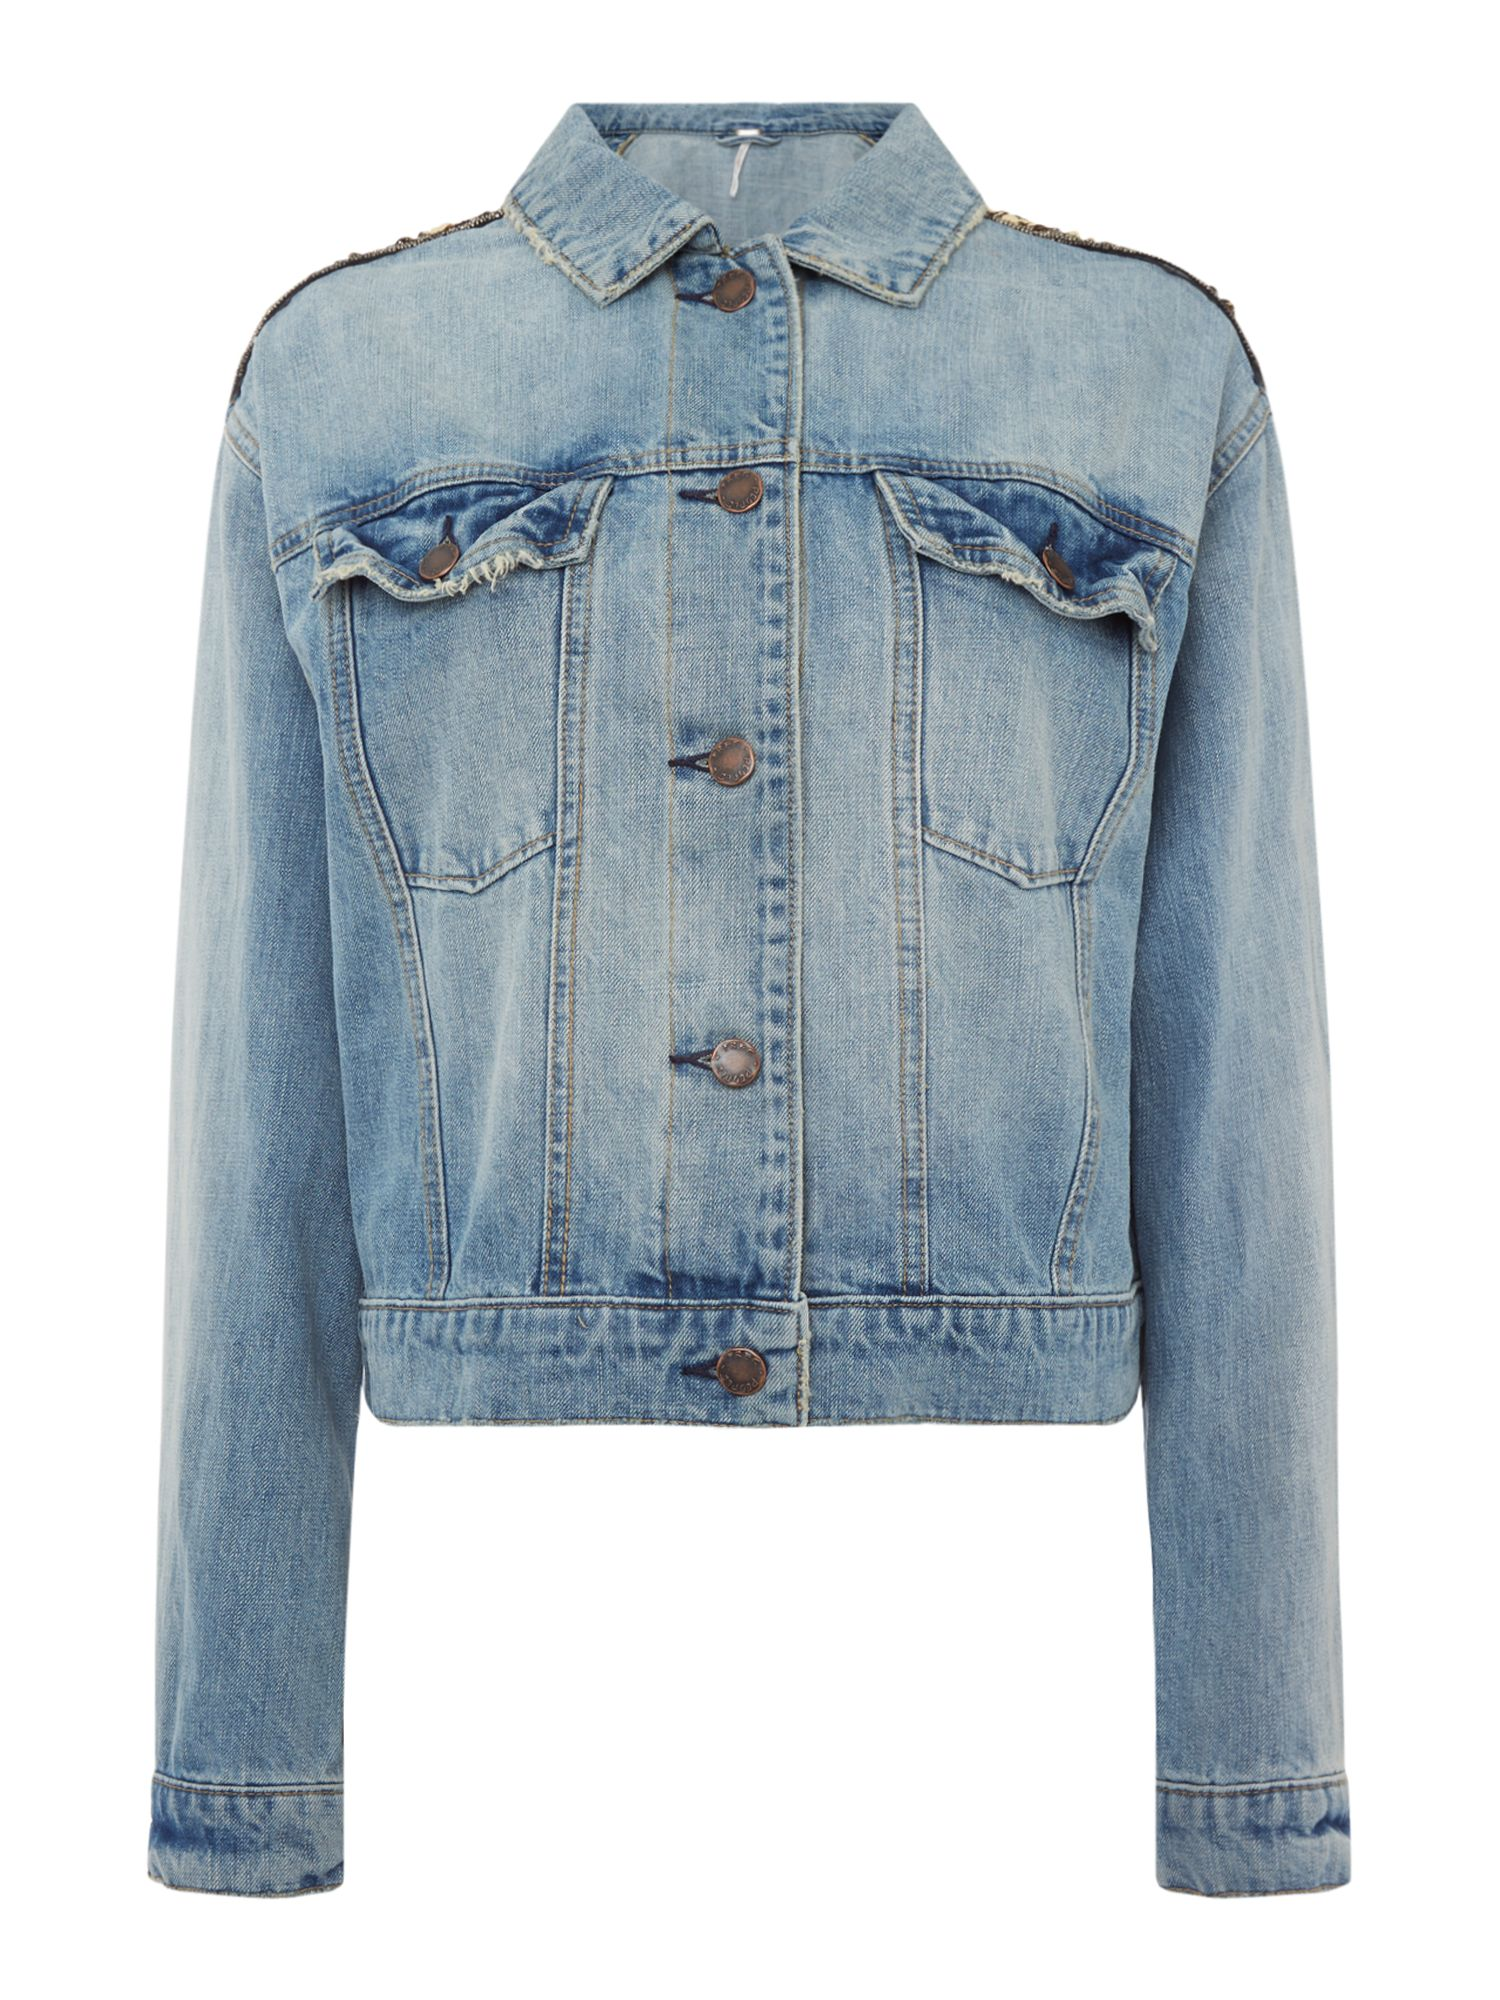 Free People Glam Embellished Denim Jacket, Denim Mid Wash